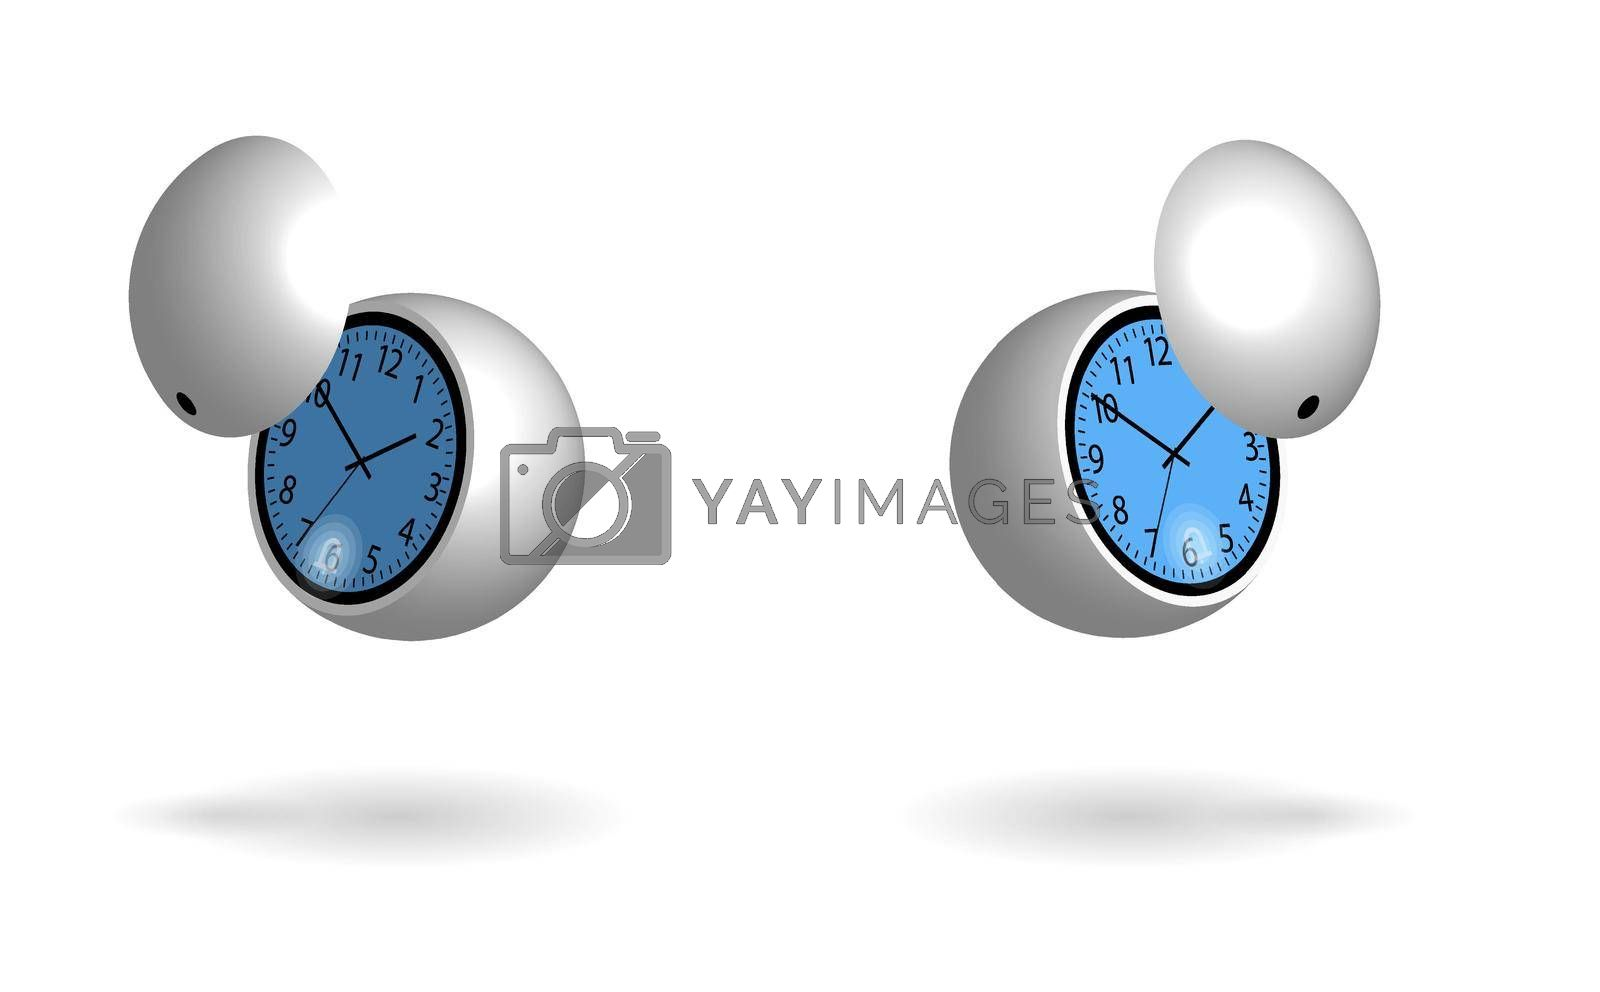 round flying sphere shaped futuristic watch with an alarm clock and a ball shaped protective panel. Blue backlight. Isolated vector on white background